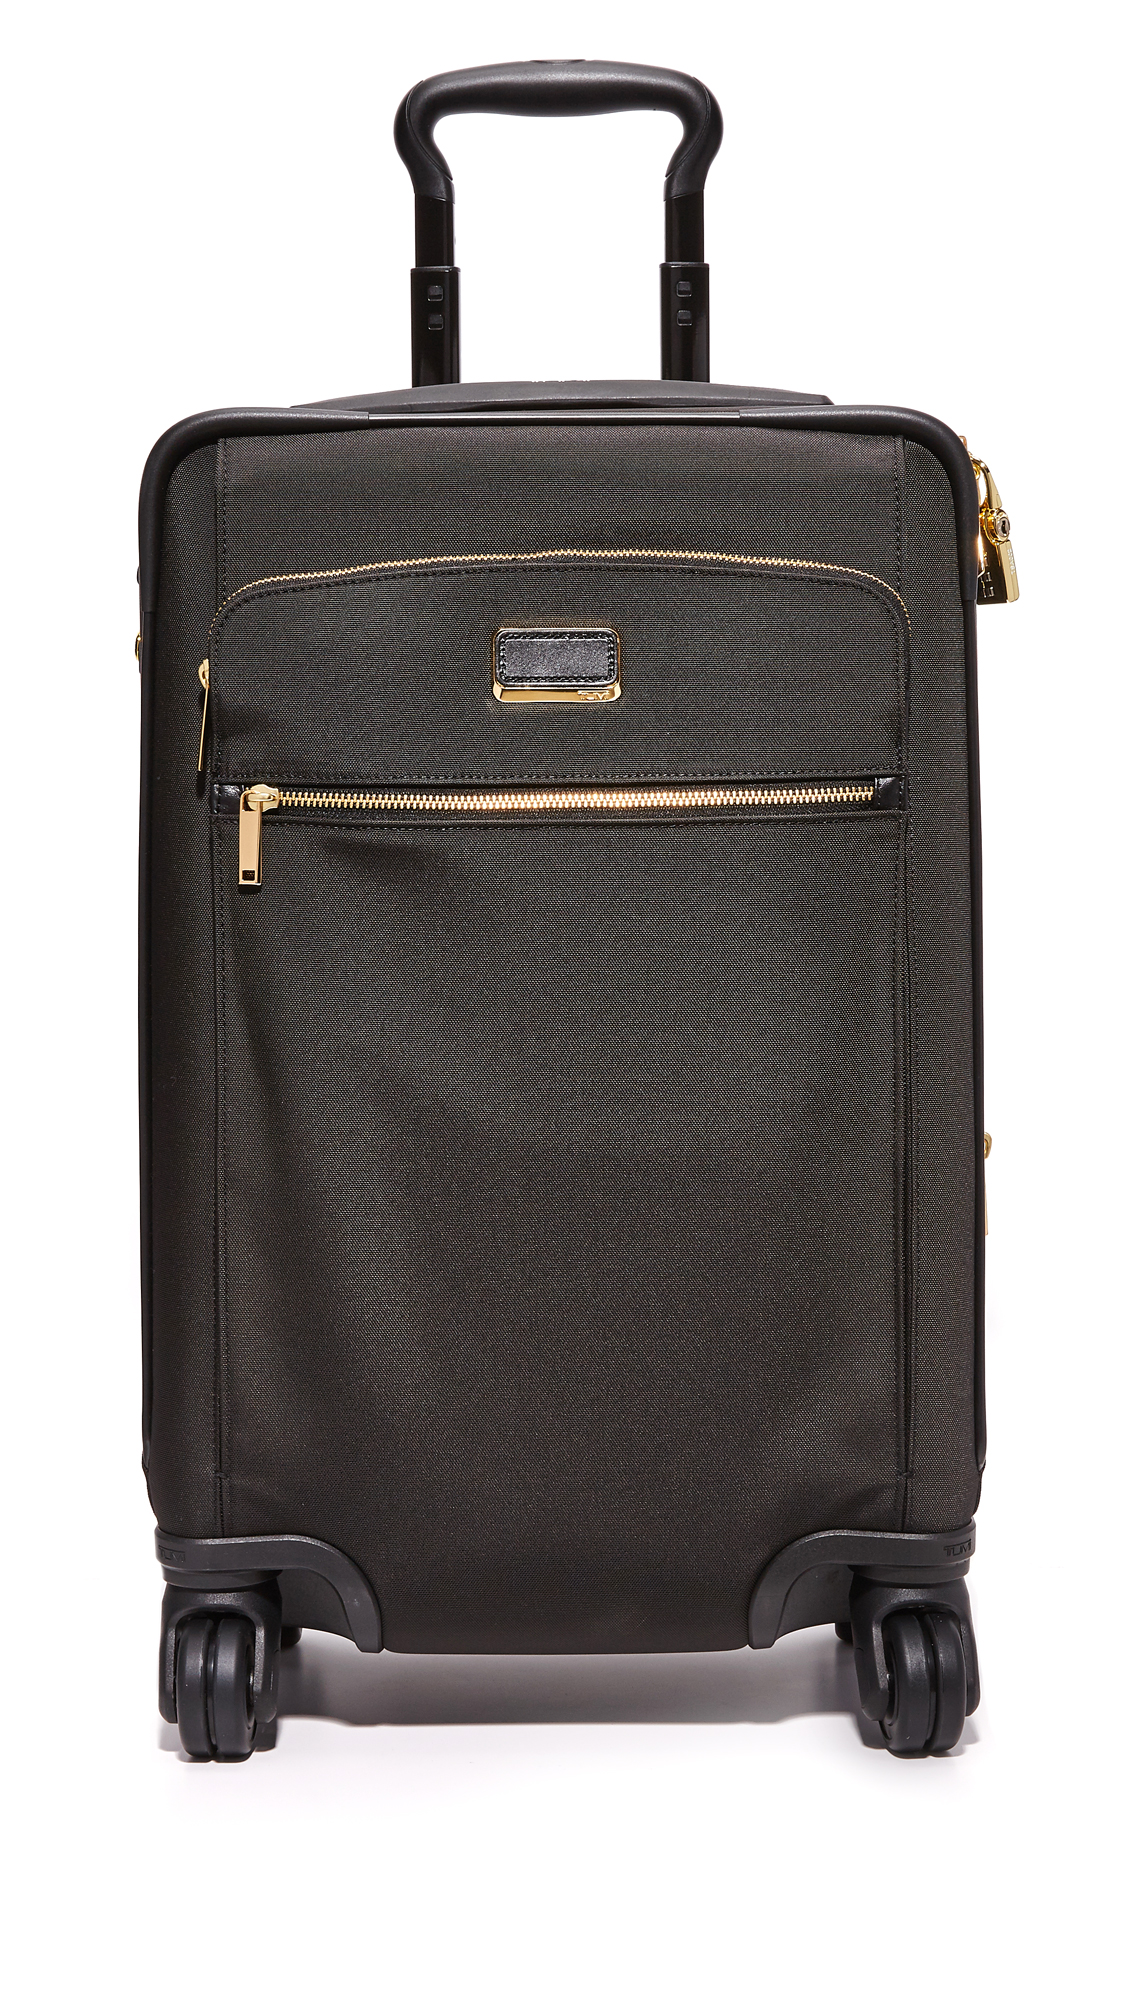 Tumi Sam International Carry On Suitcase - Black